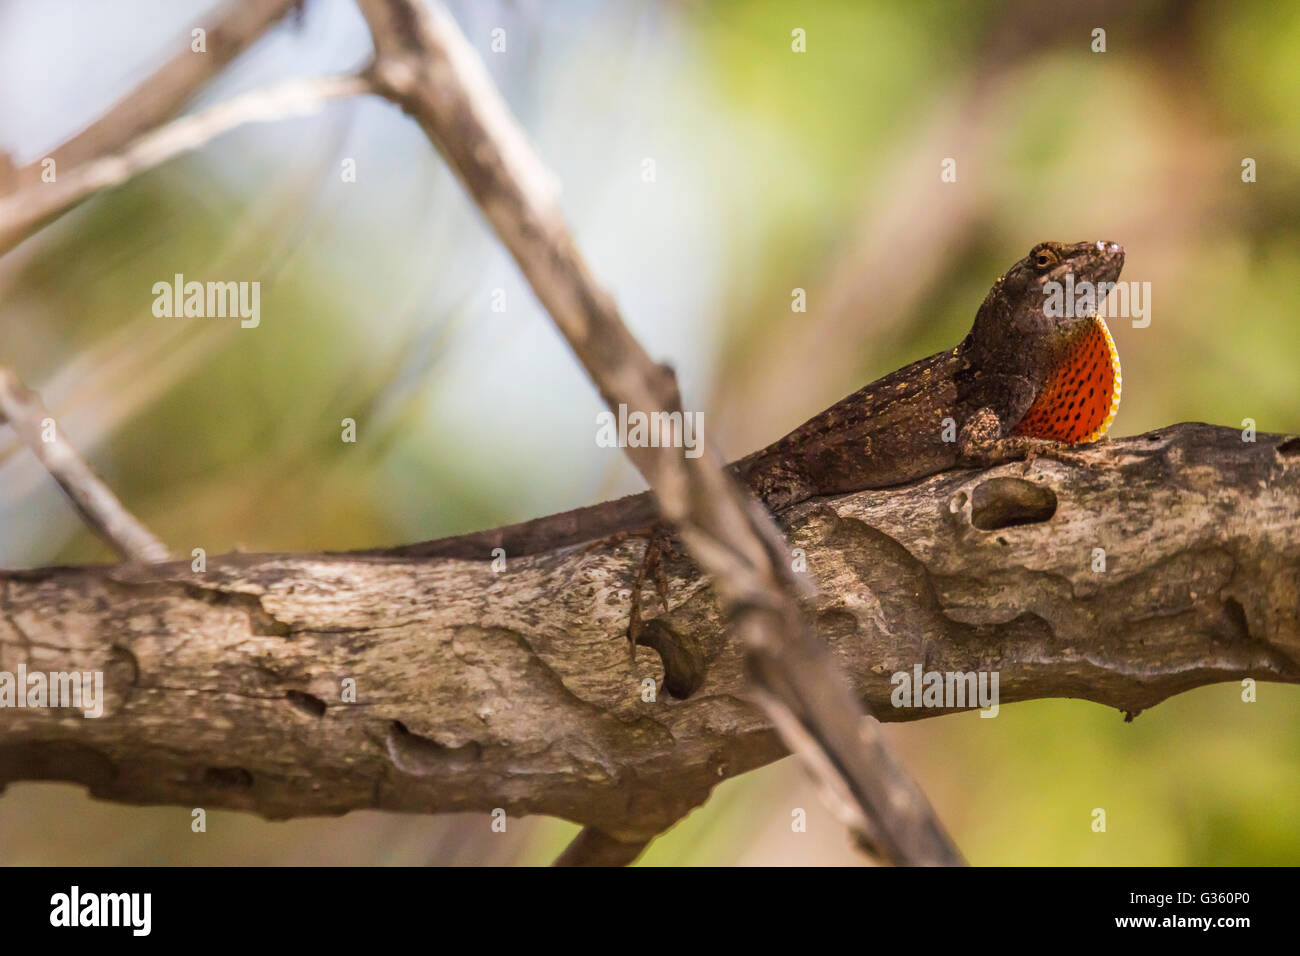 Brown Anole, Anolis sagrei, a nonnative species living on Garden Key in Dry Tortugas National Park, Florida, USA - Stock Image